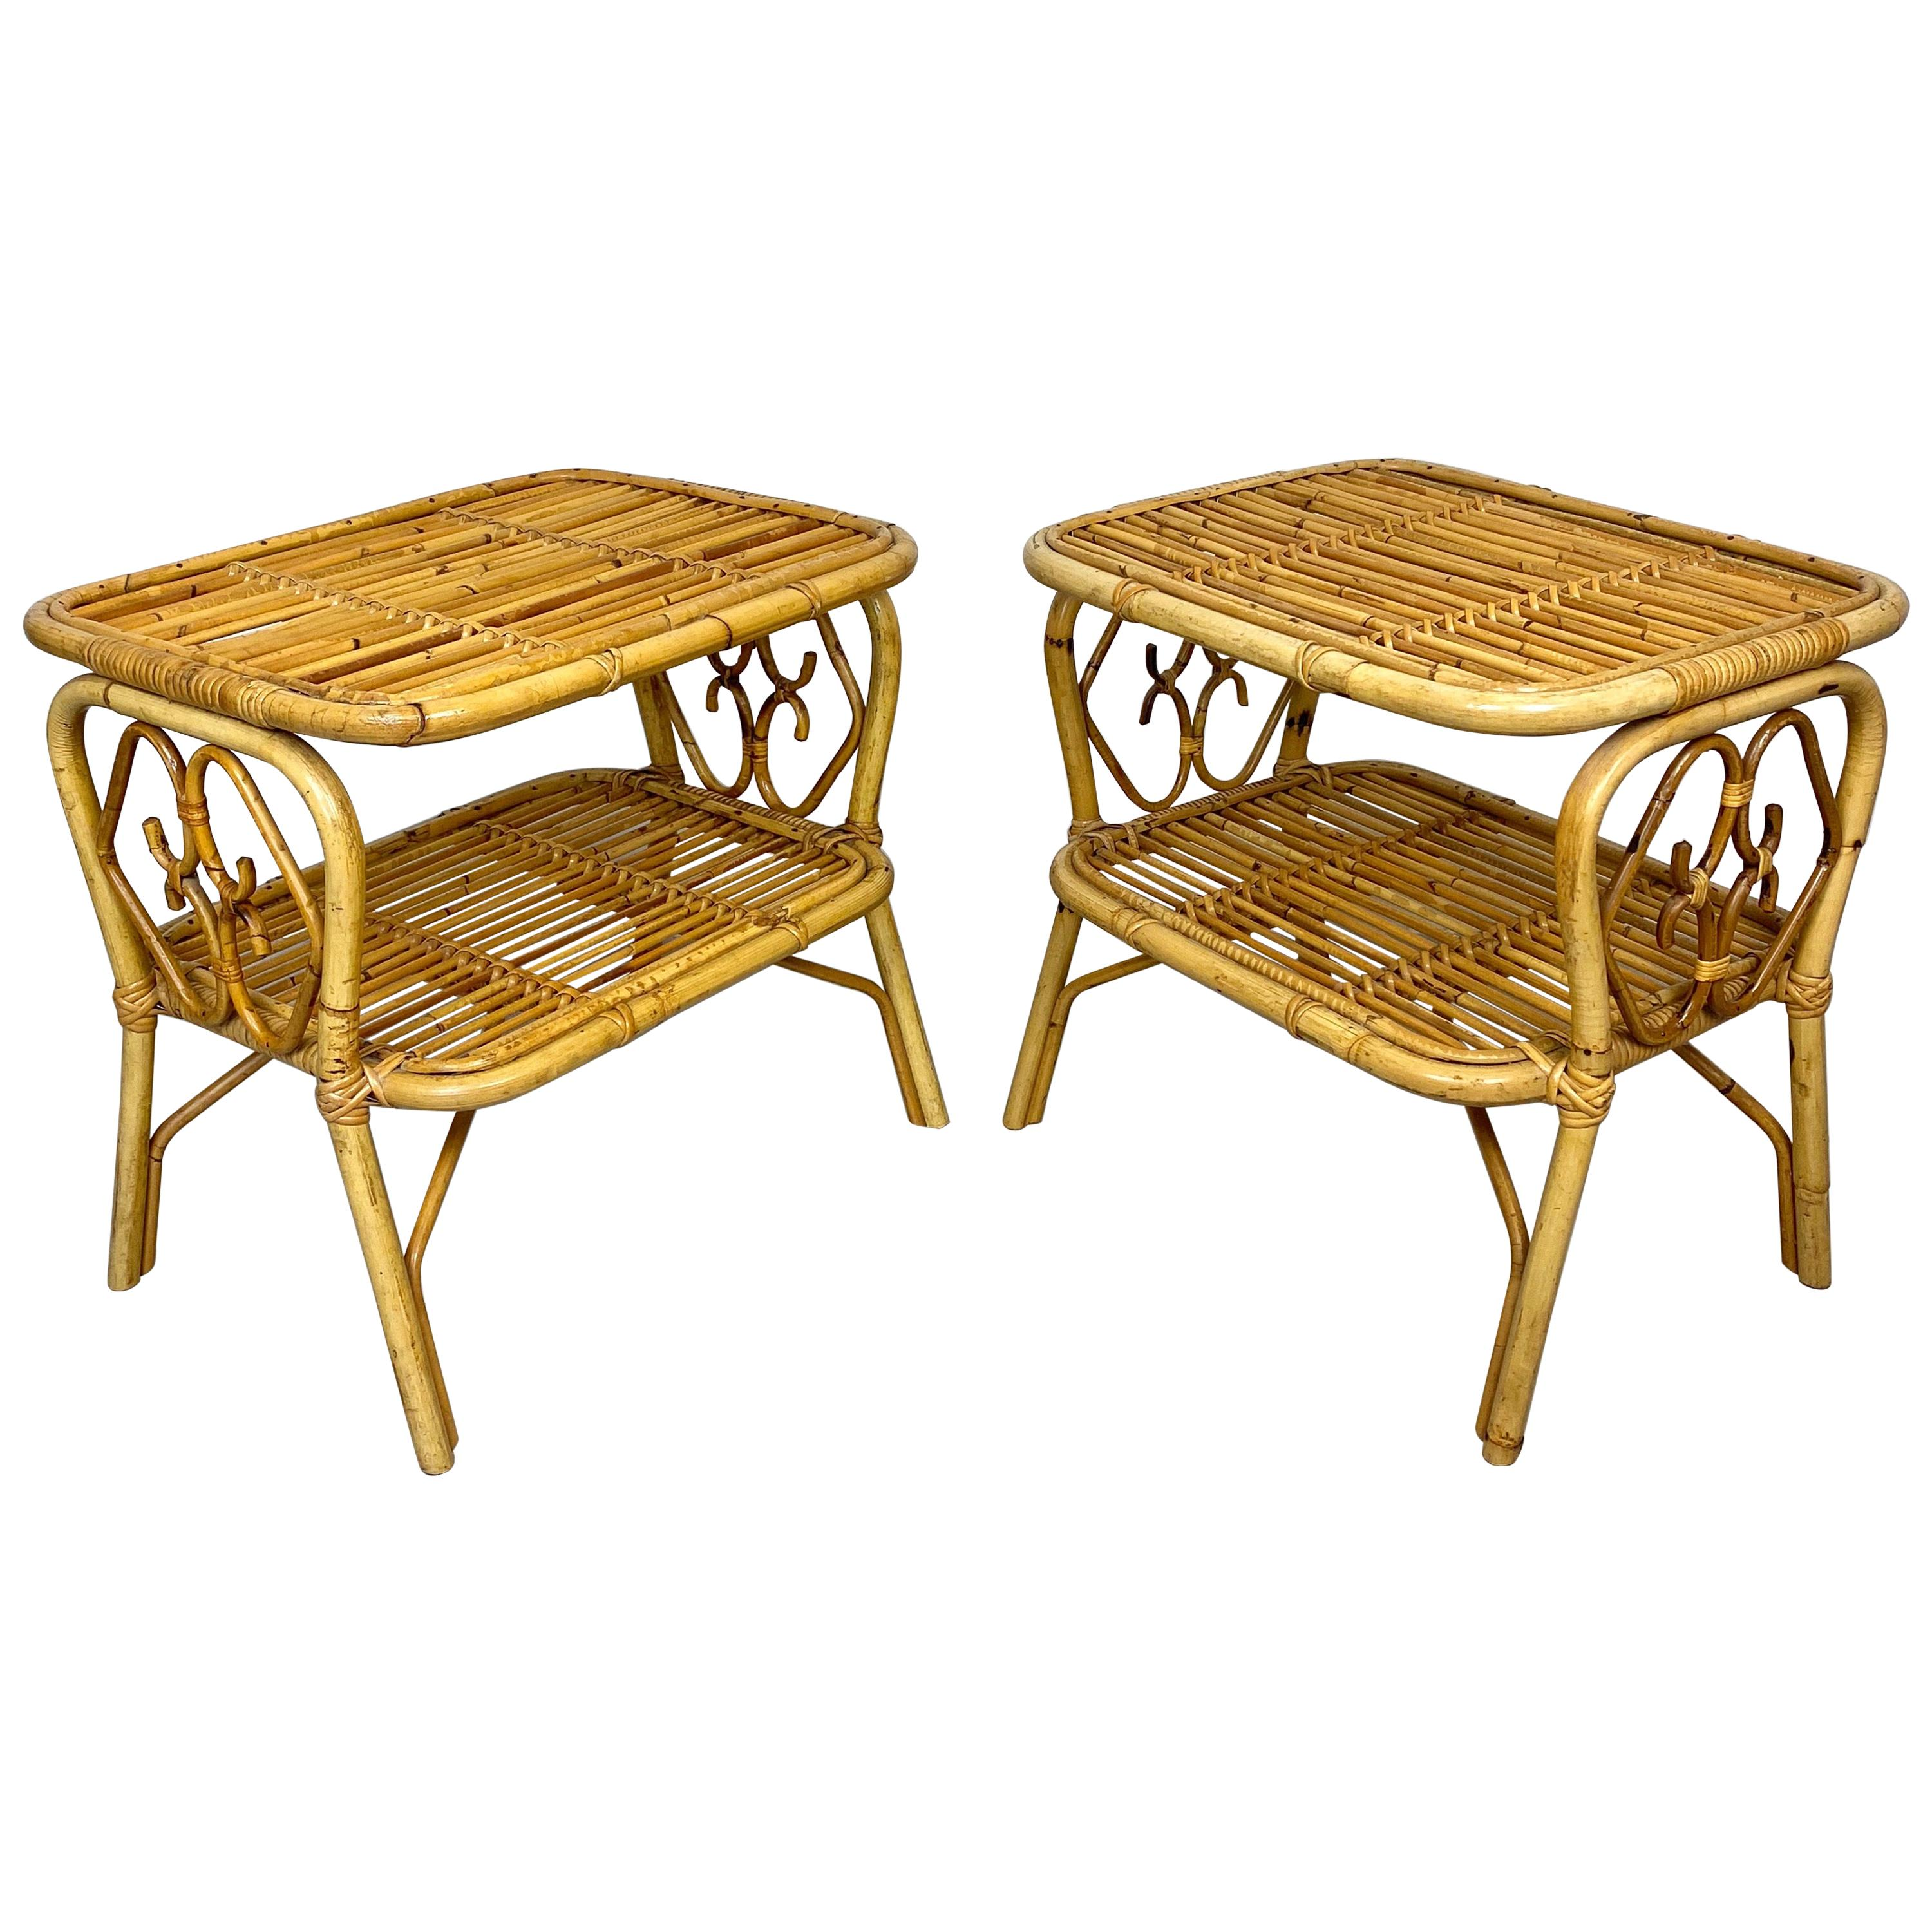 Pair Of Nightstand Side Table In Bamboo Rattan Italy 1970s For Sale At 1stdibs